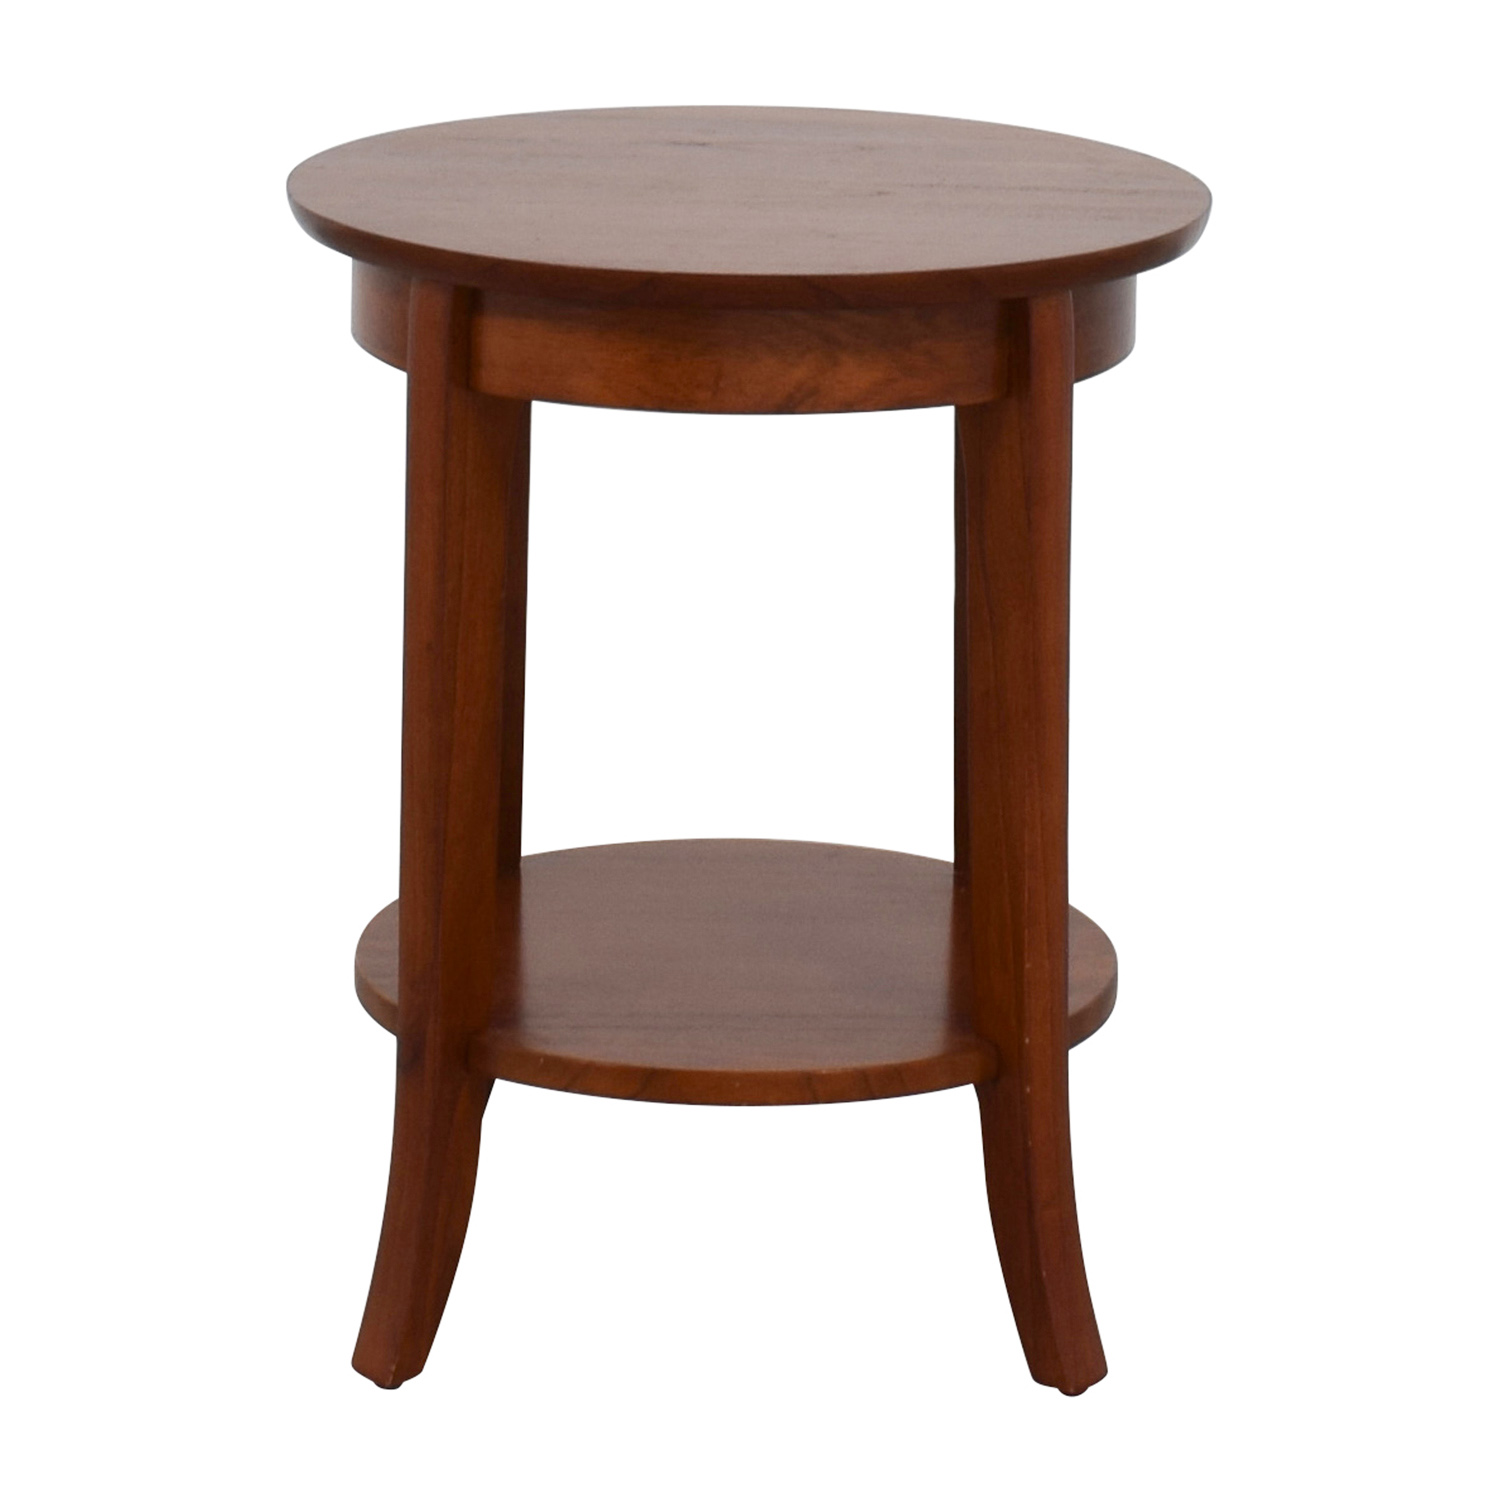 OFF Pottery Barn Pottery Barn Chloe Side Table Tables - Pottery barn chloe end table